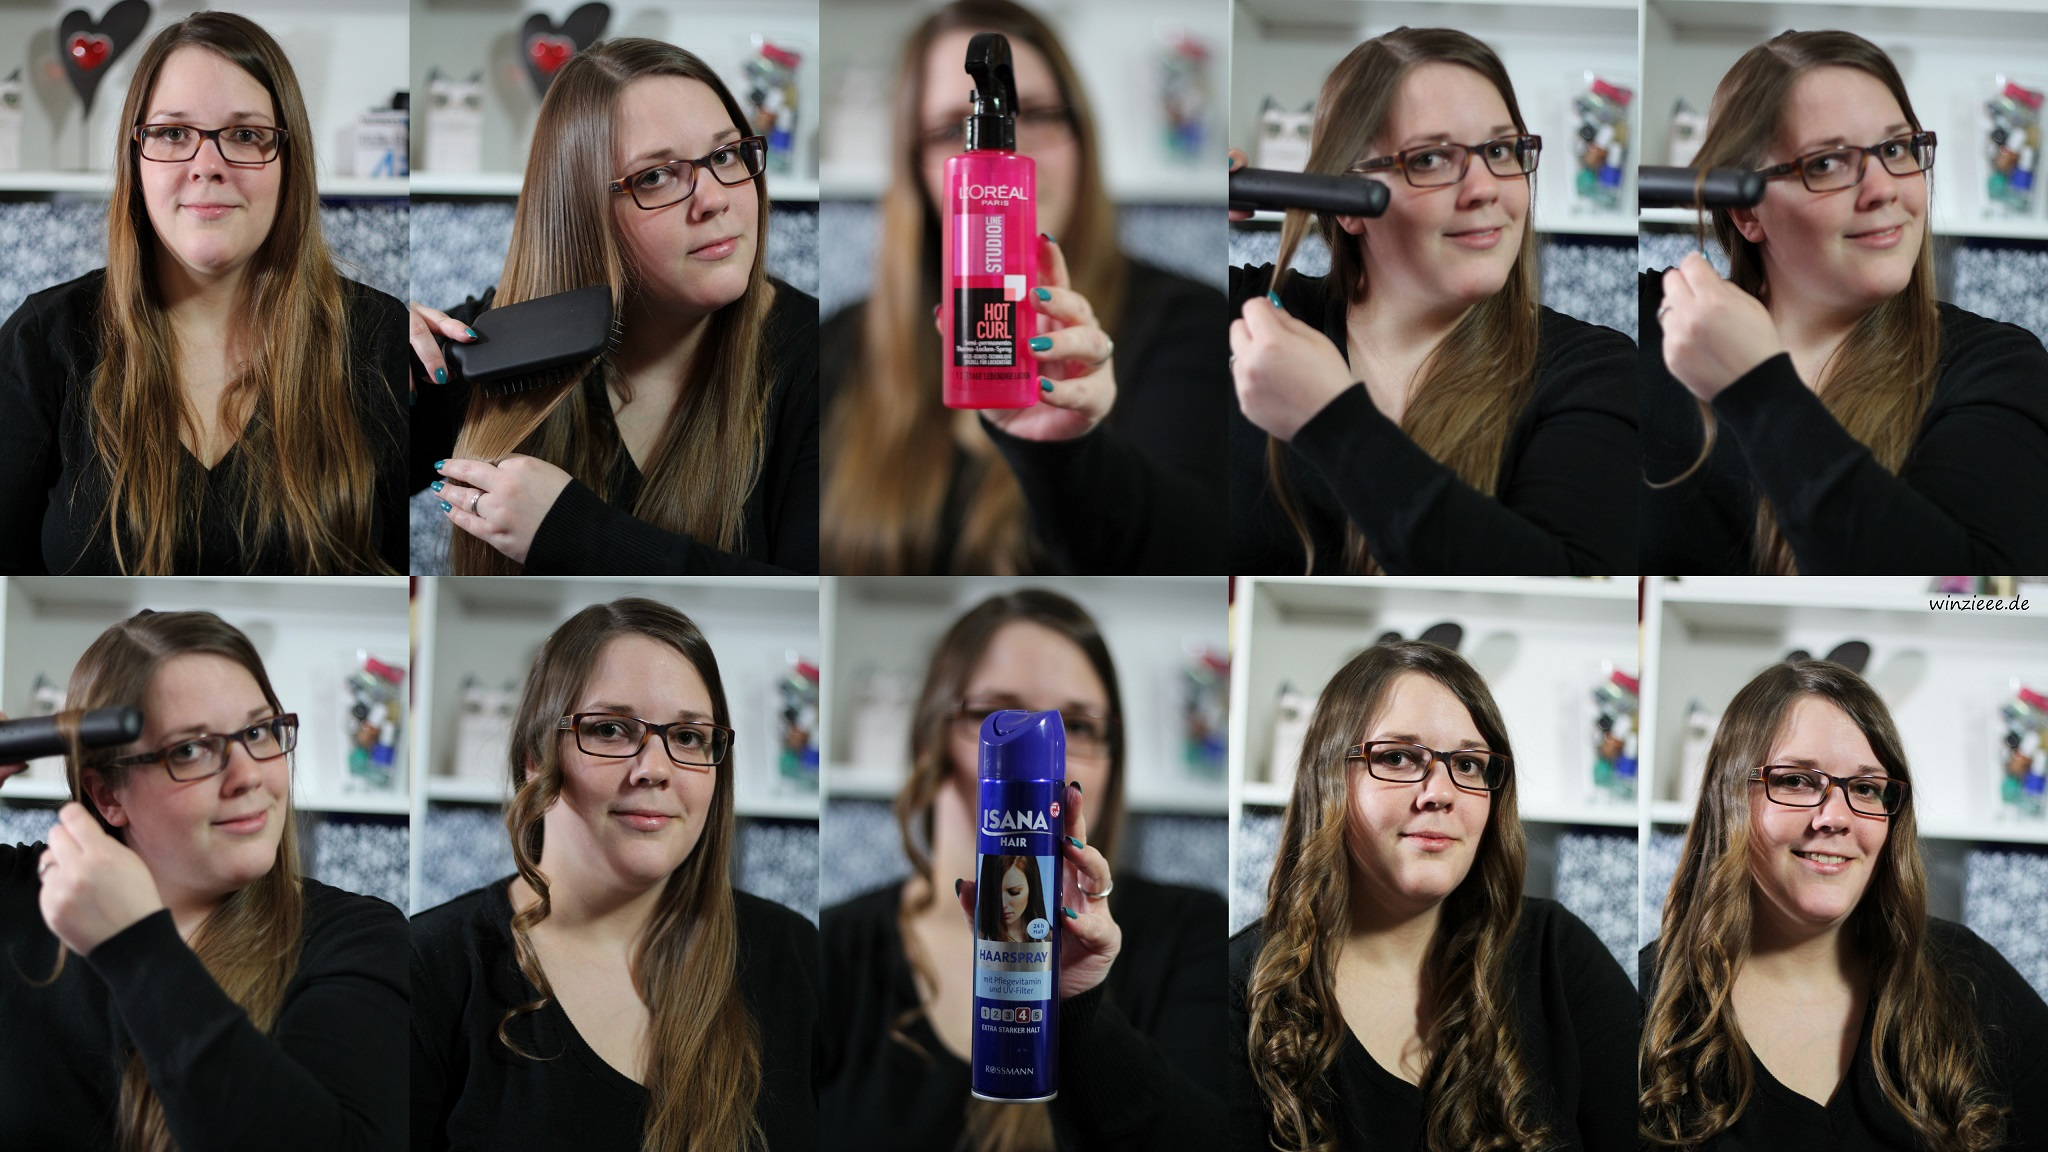 Tutorial Locken mit ghd Glaetteisen